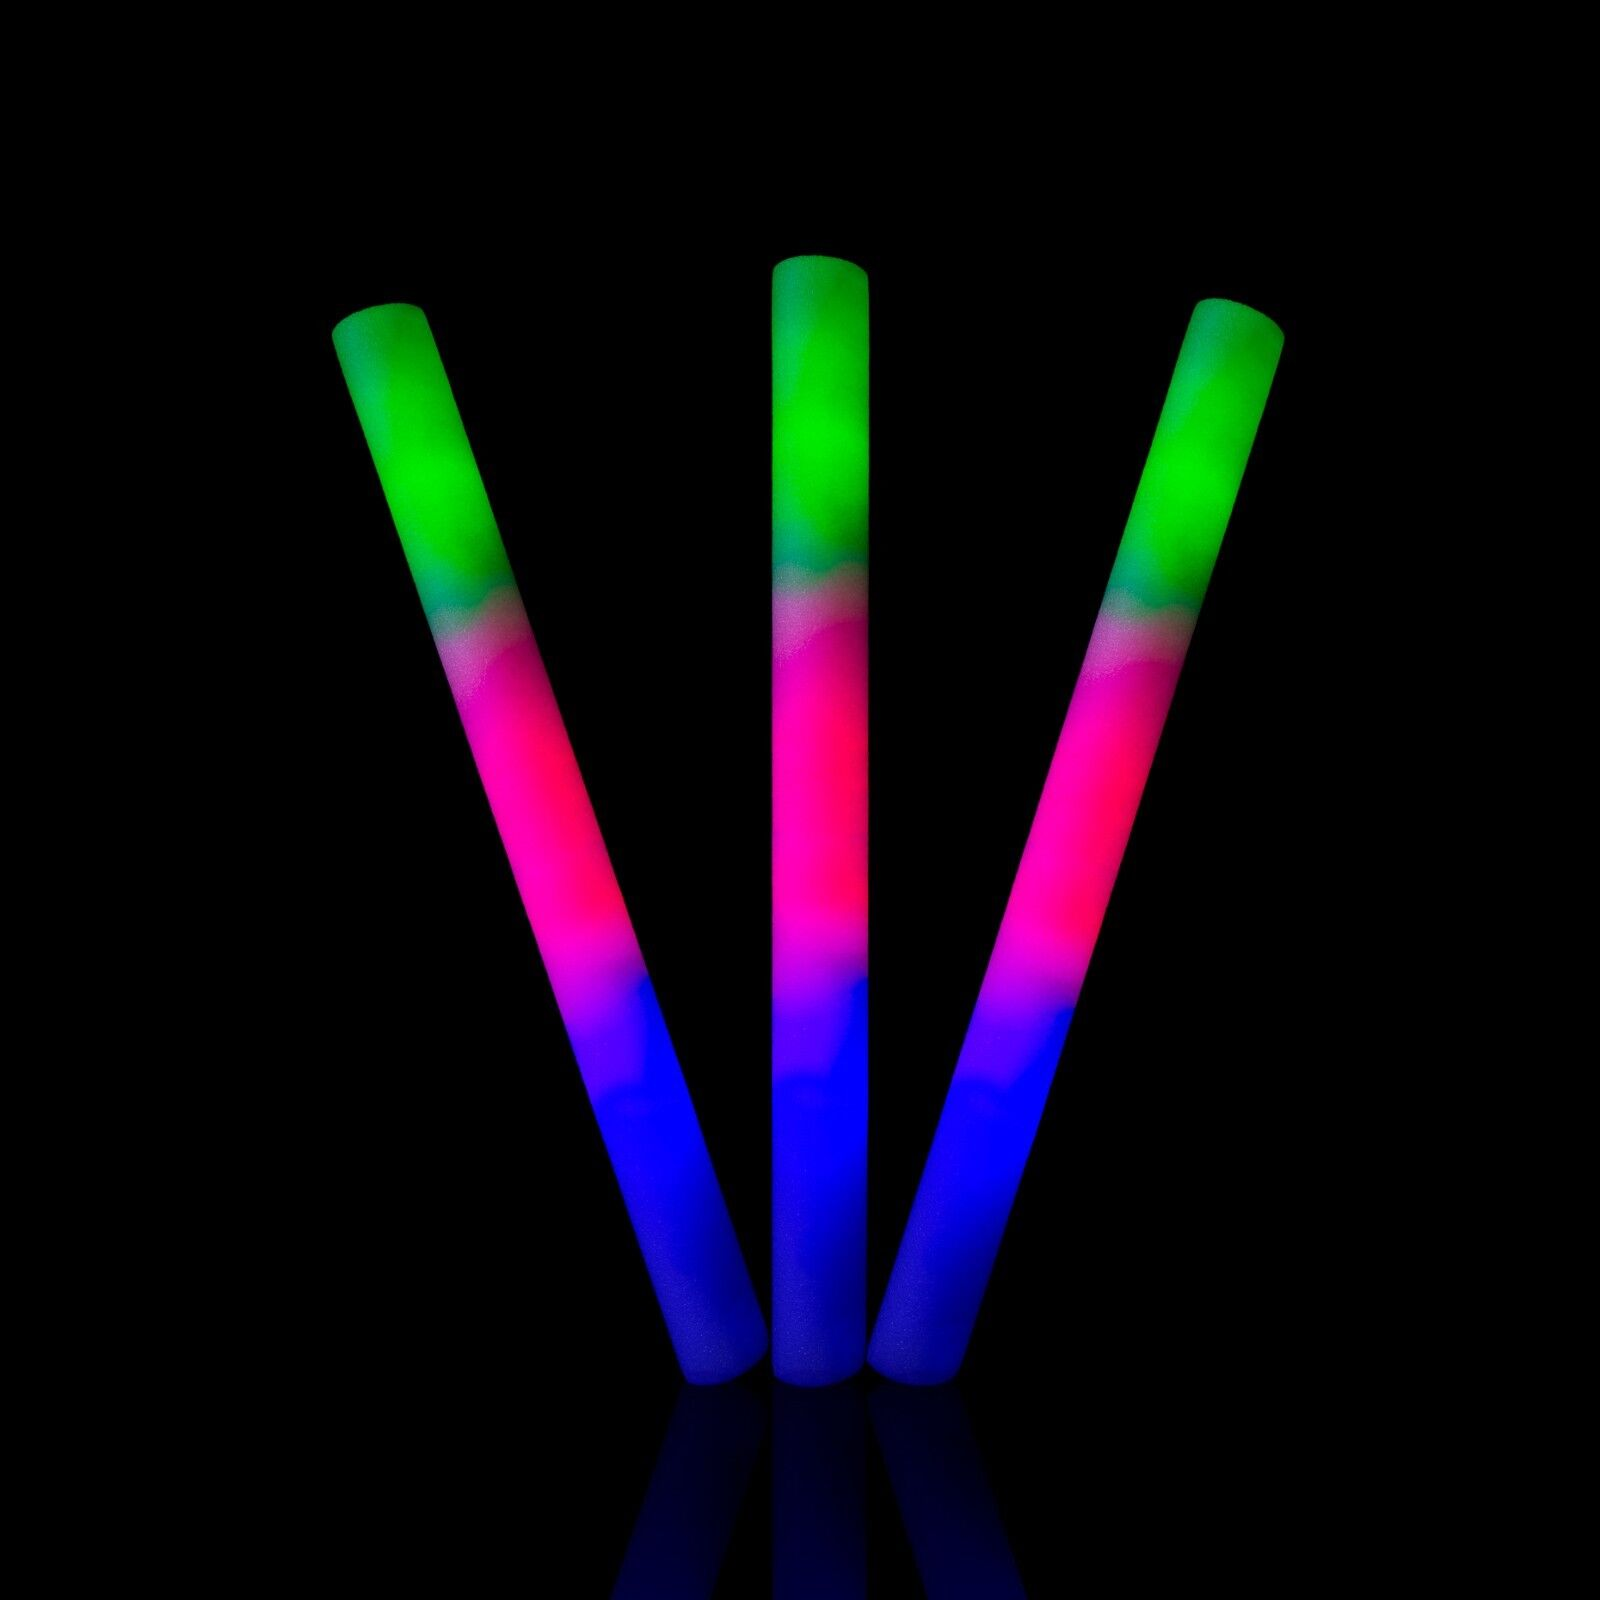 Led Glow Sticks Details About 12 Pcs Light Up Flashing Led Glow Stick Foam Wands Rave Dj Batons Rally Concert